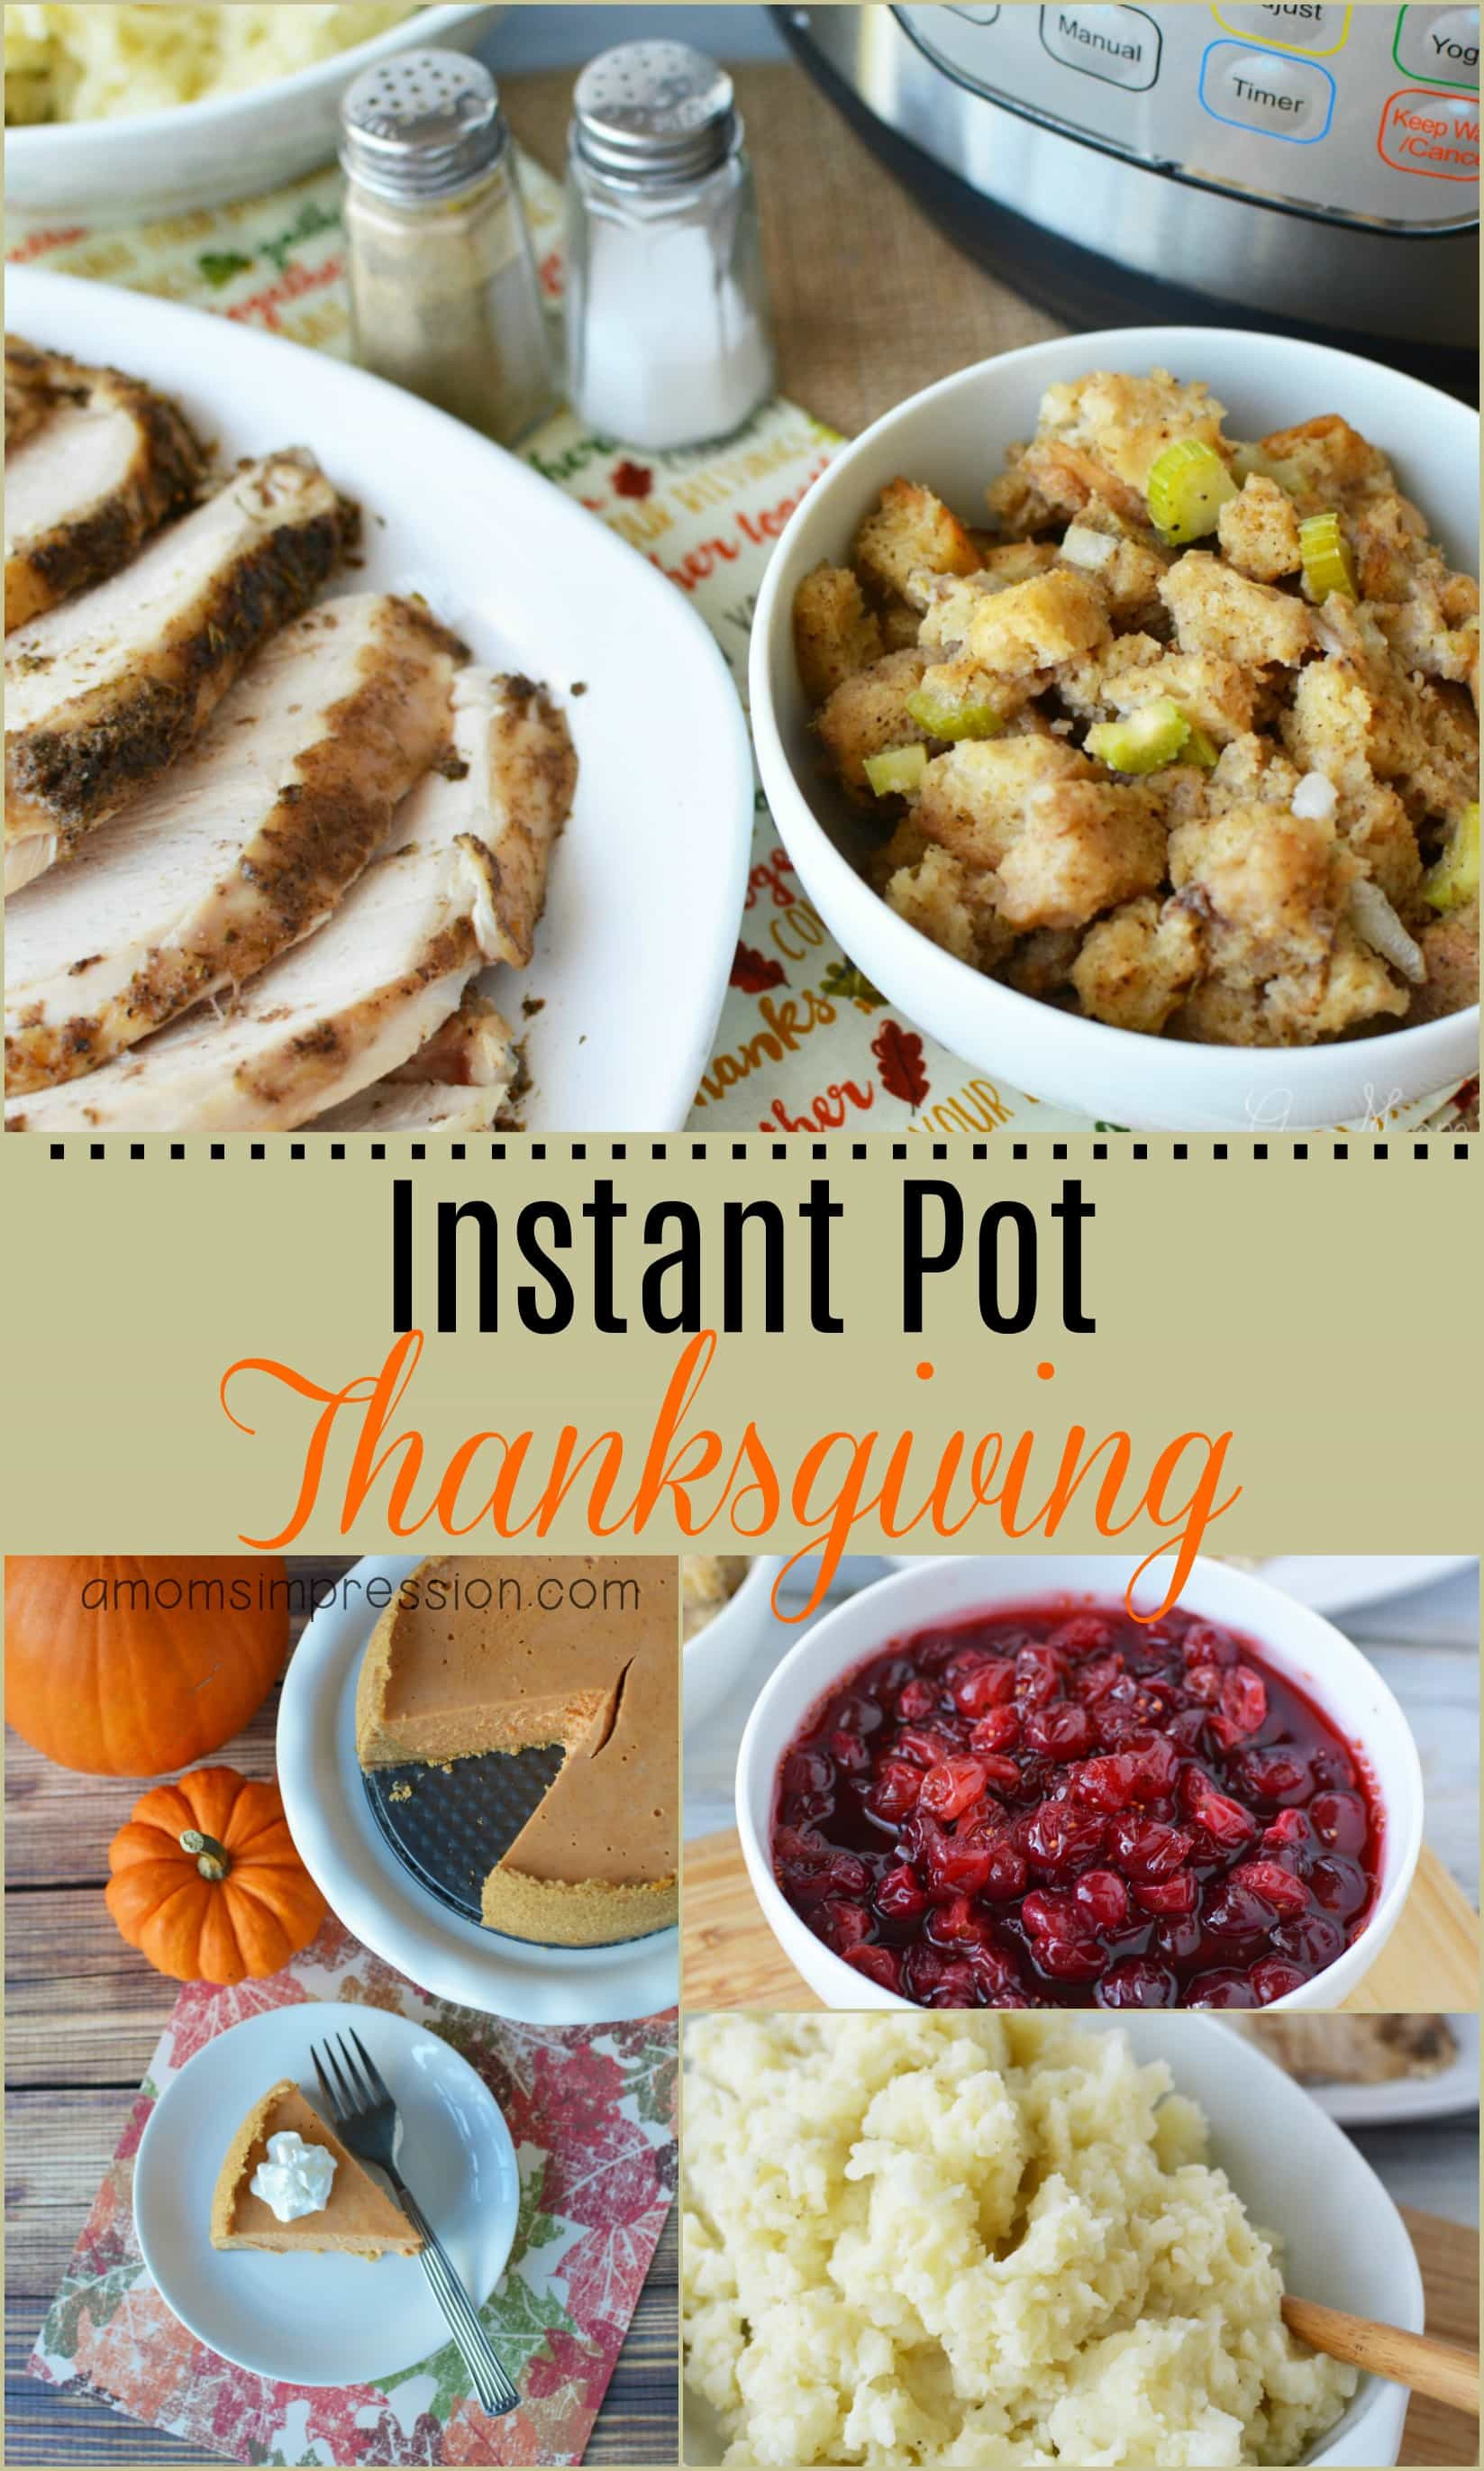 Instant Pot Thanksgiving Recipes  4 Quick and Easy Instant Pot Thanksgiving Recipes